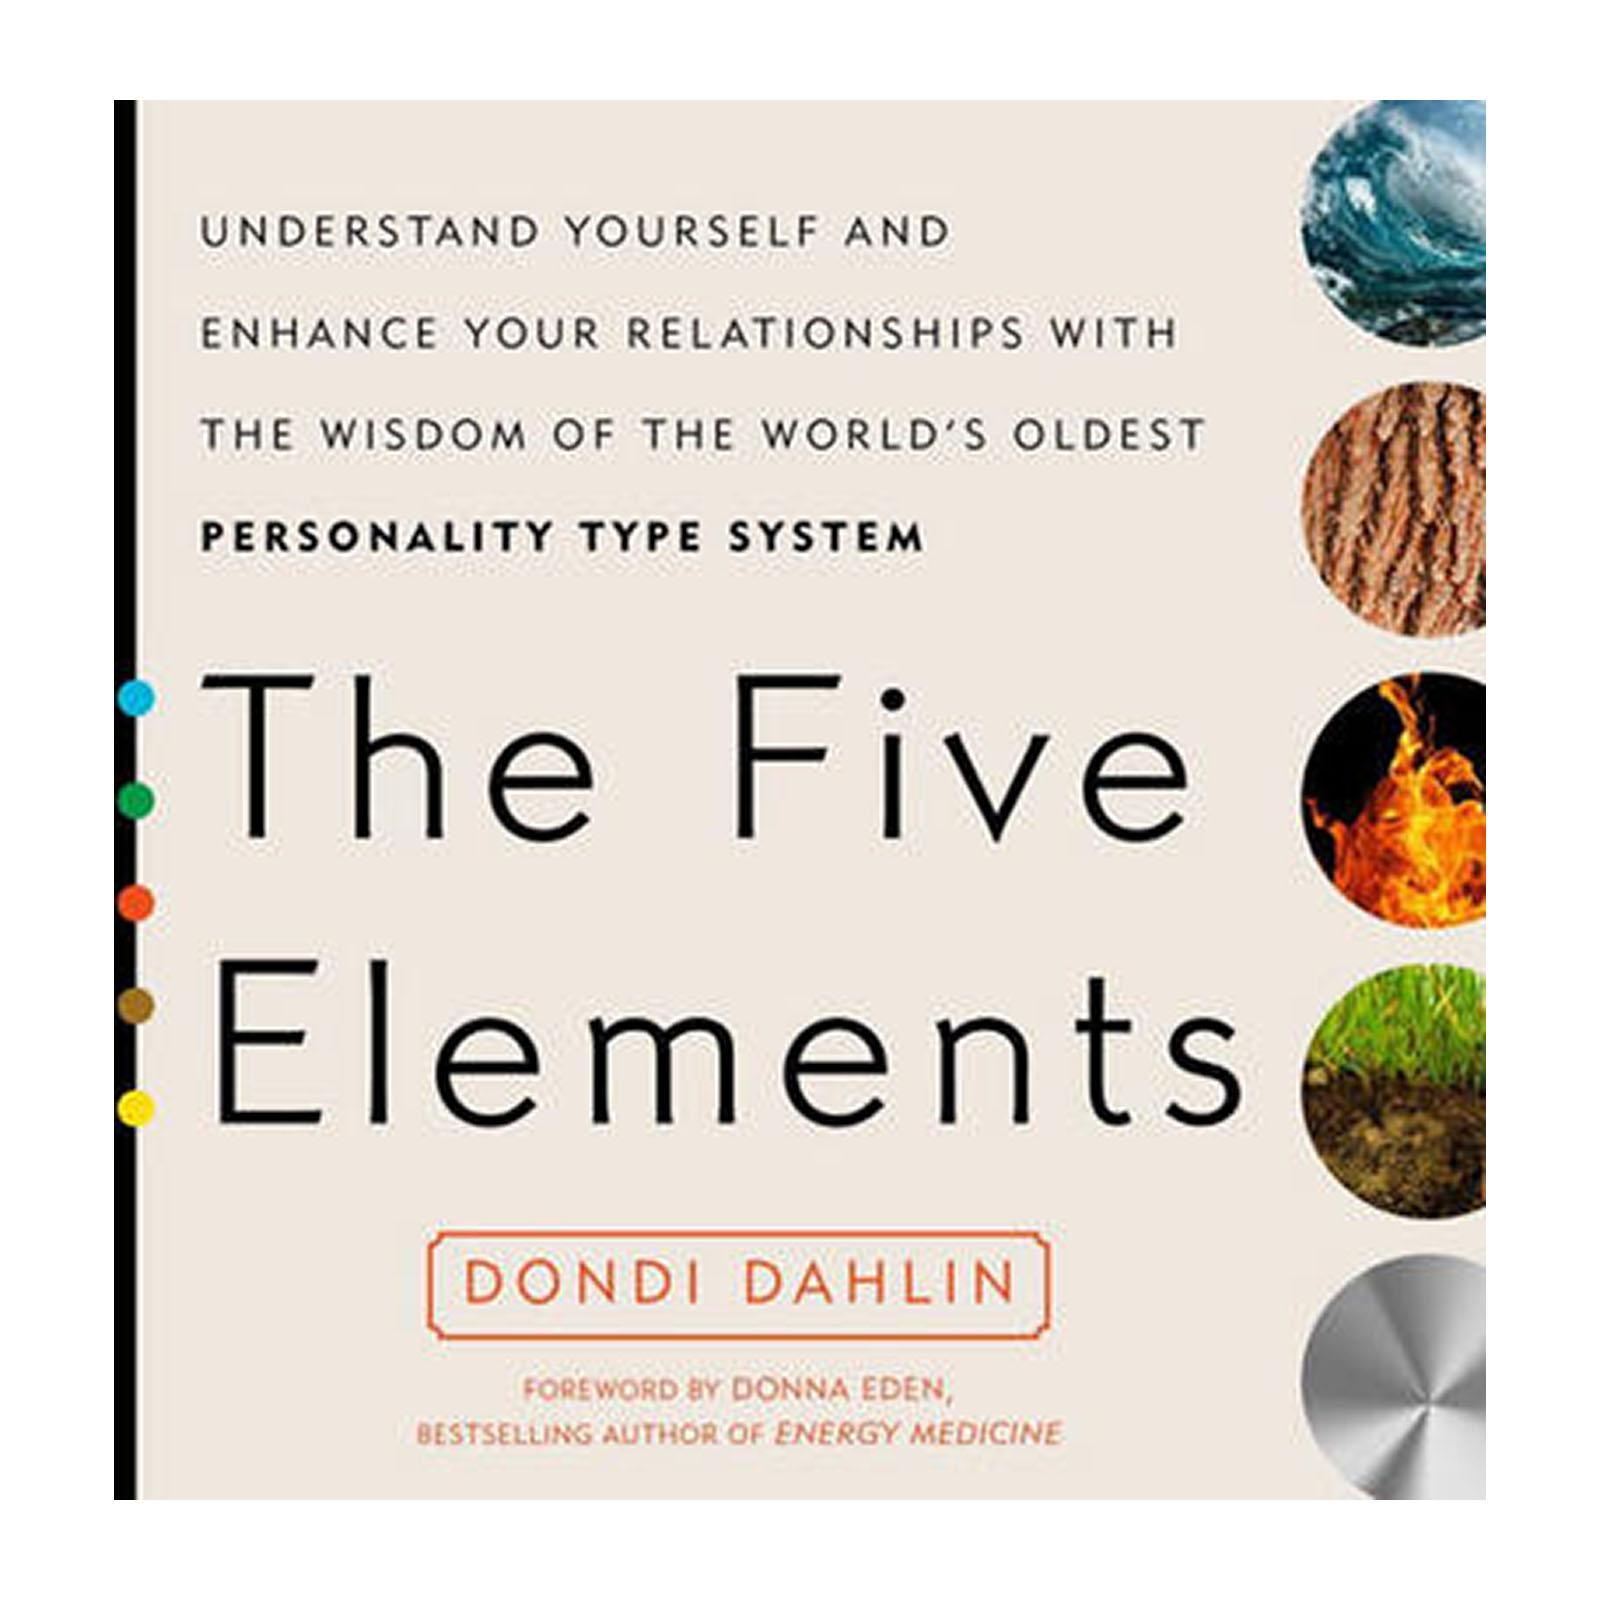 The Five Elements: Understand Yourself And Enhance Your Relationships With The Wisdom Of The Worlds Oldest Personality Type System (Paperback)